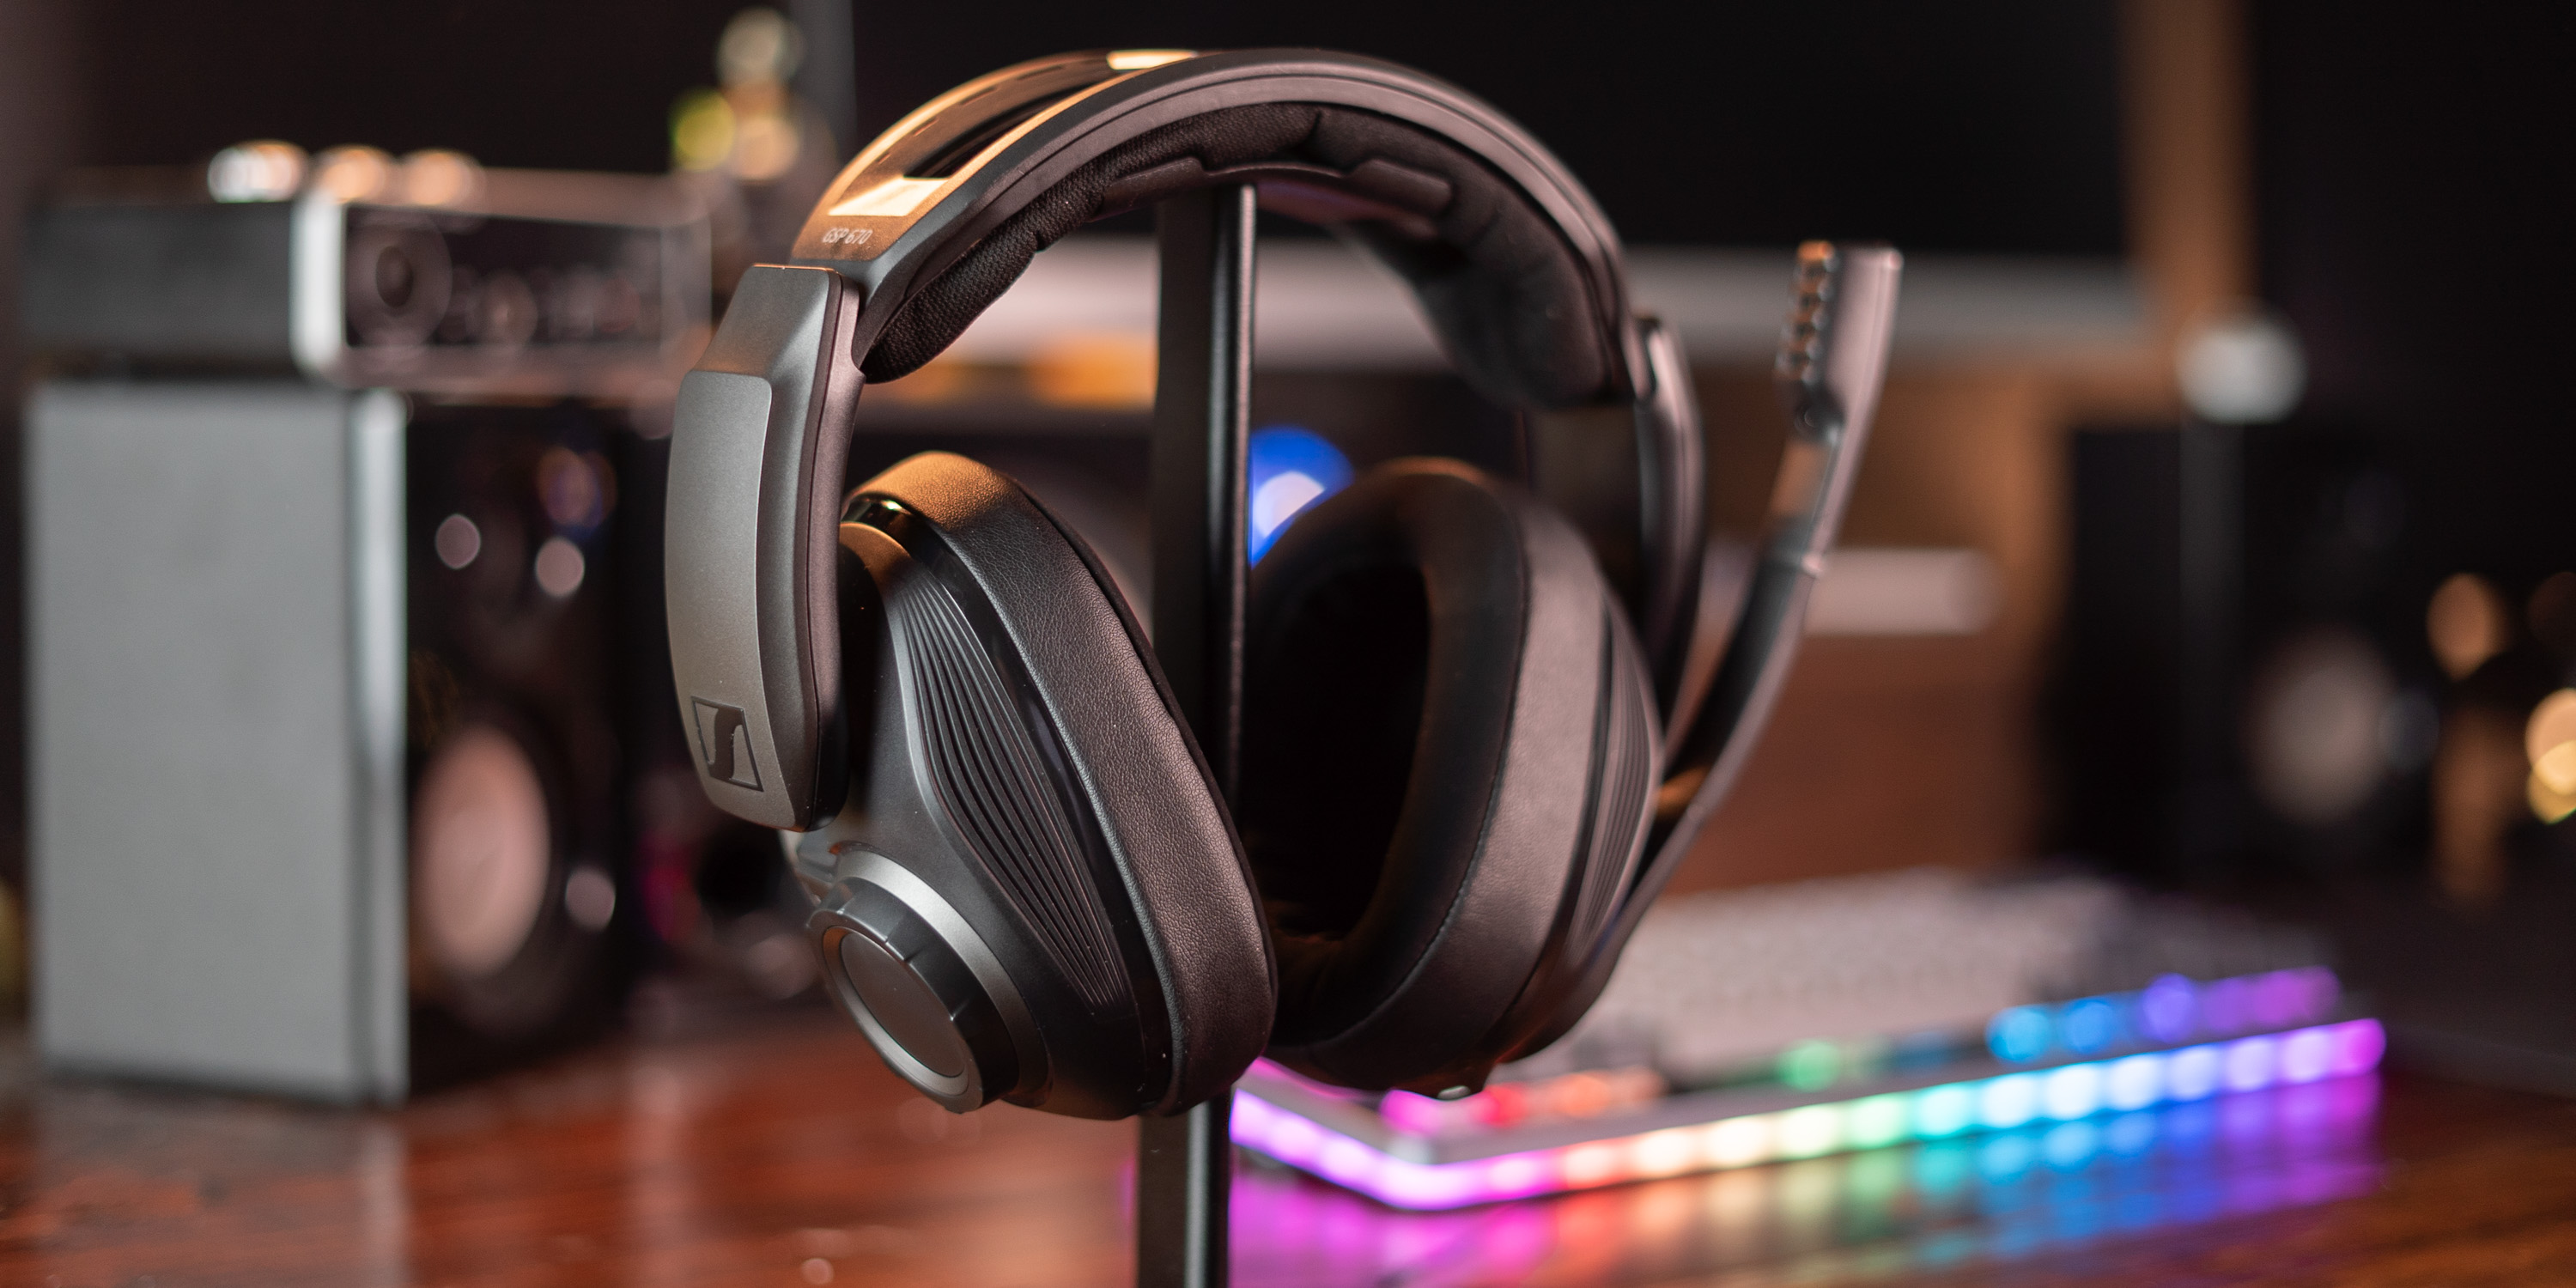 Sennheiser GSP 670 on desk